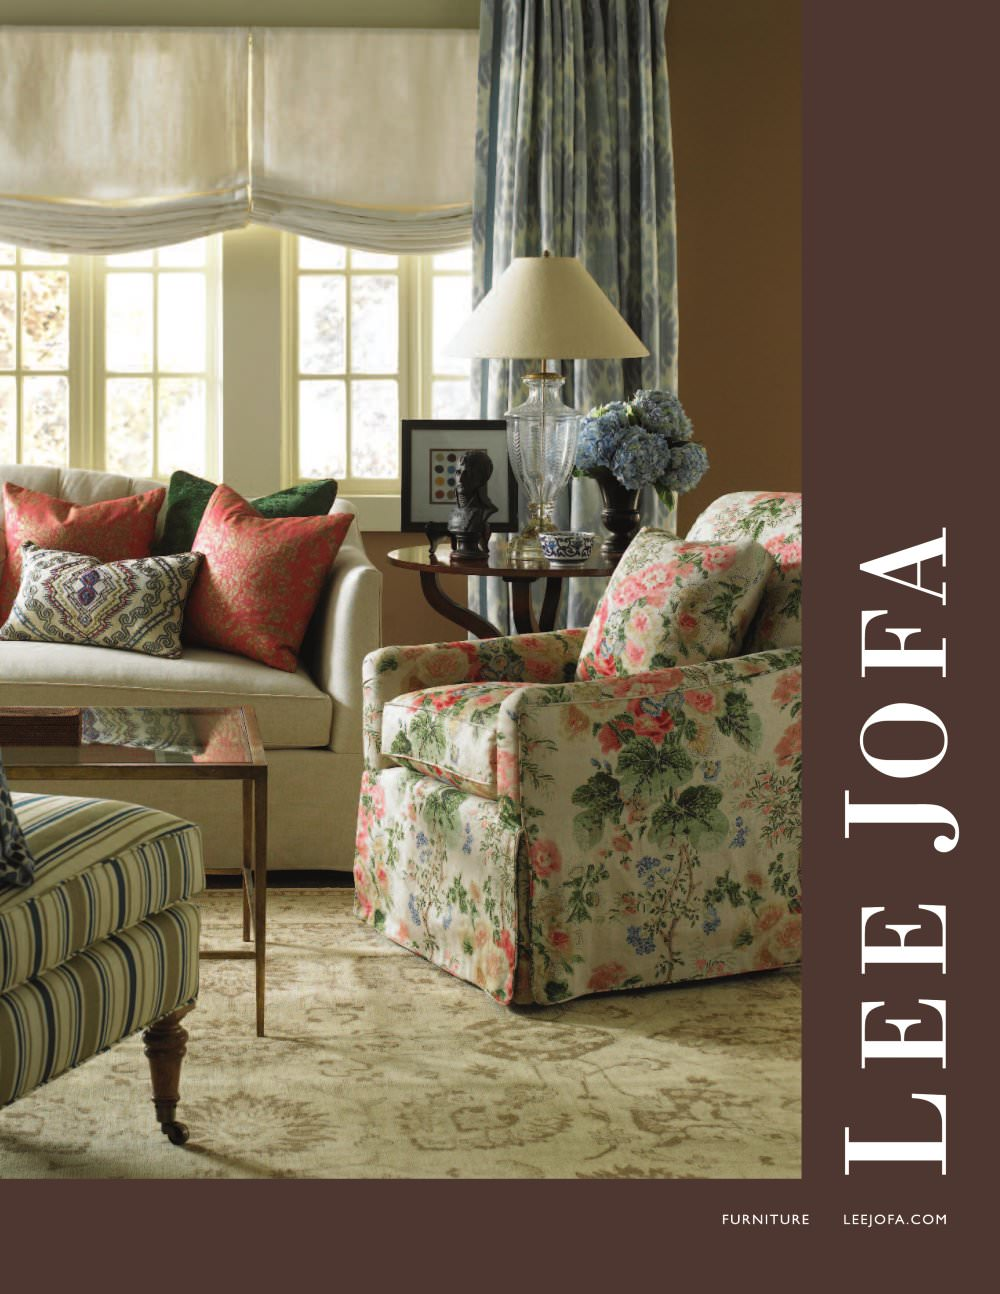 Lee Jofa Furniture CATALOG 2013   1 / 82 Pages